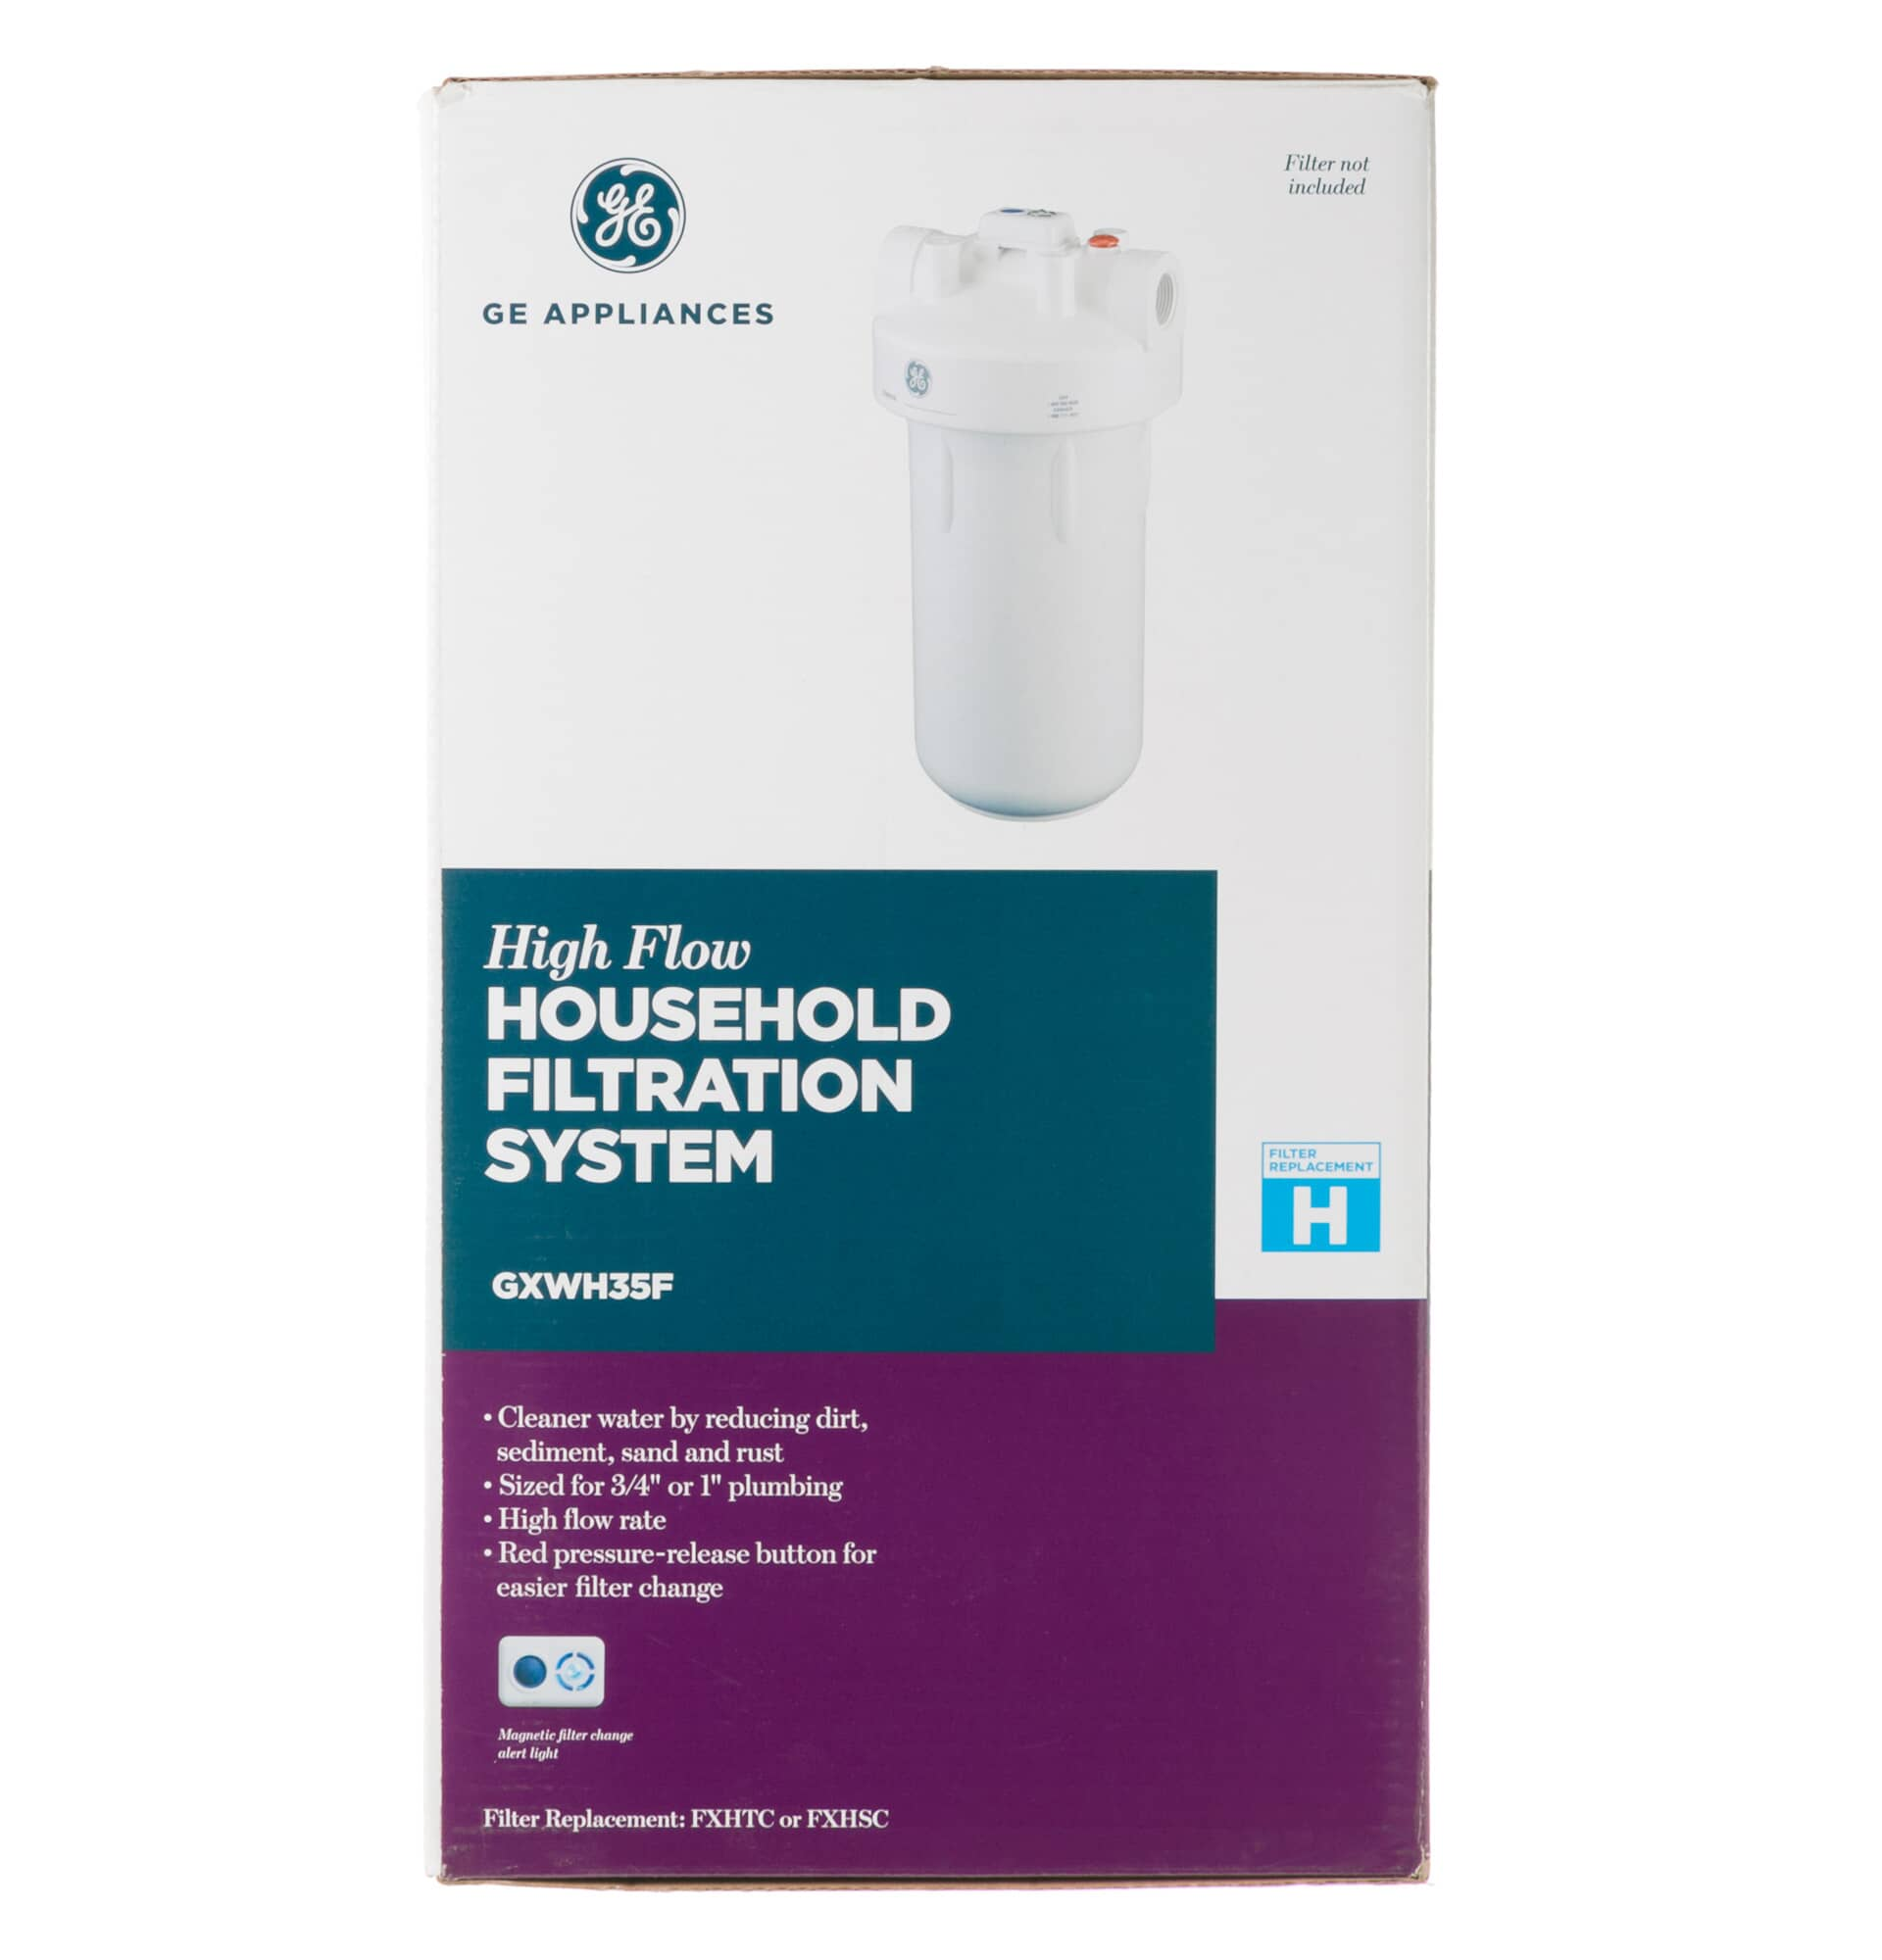 GE ApplianceGXWH35FWHOLE WATER FILTER